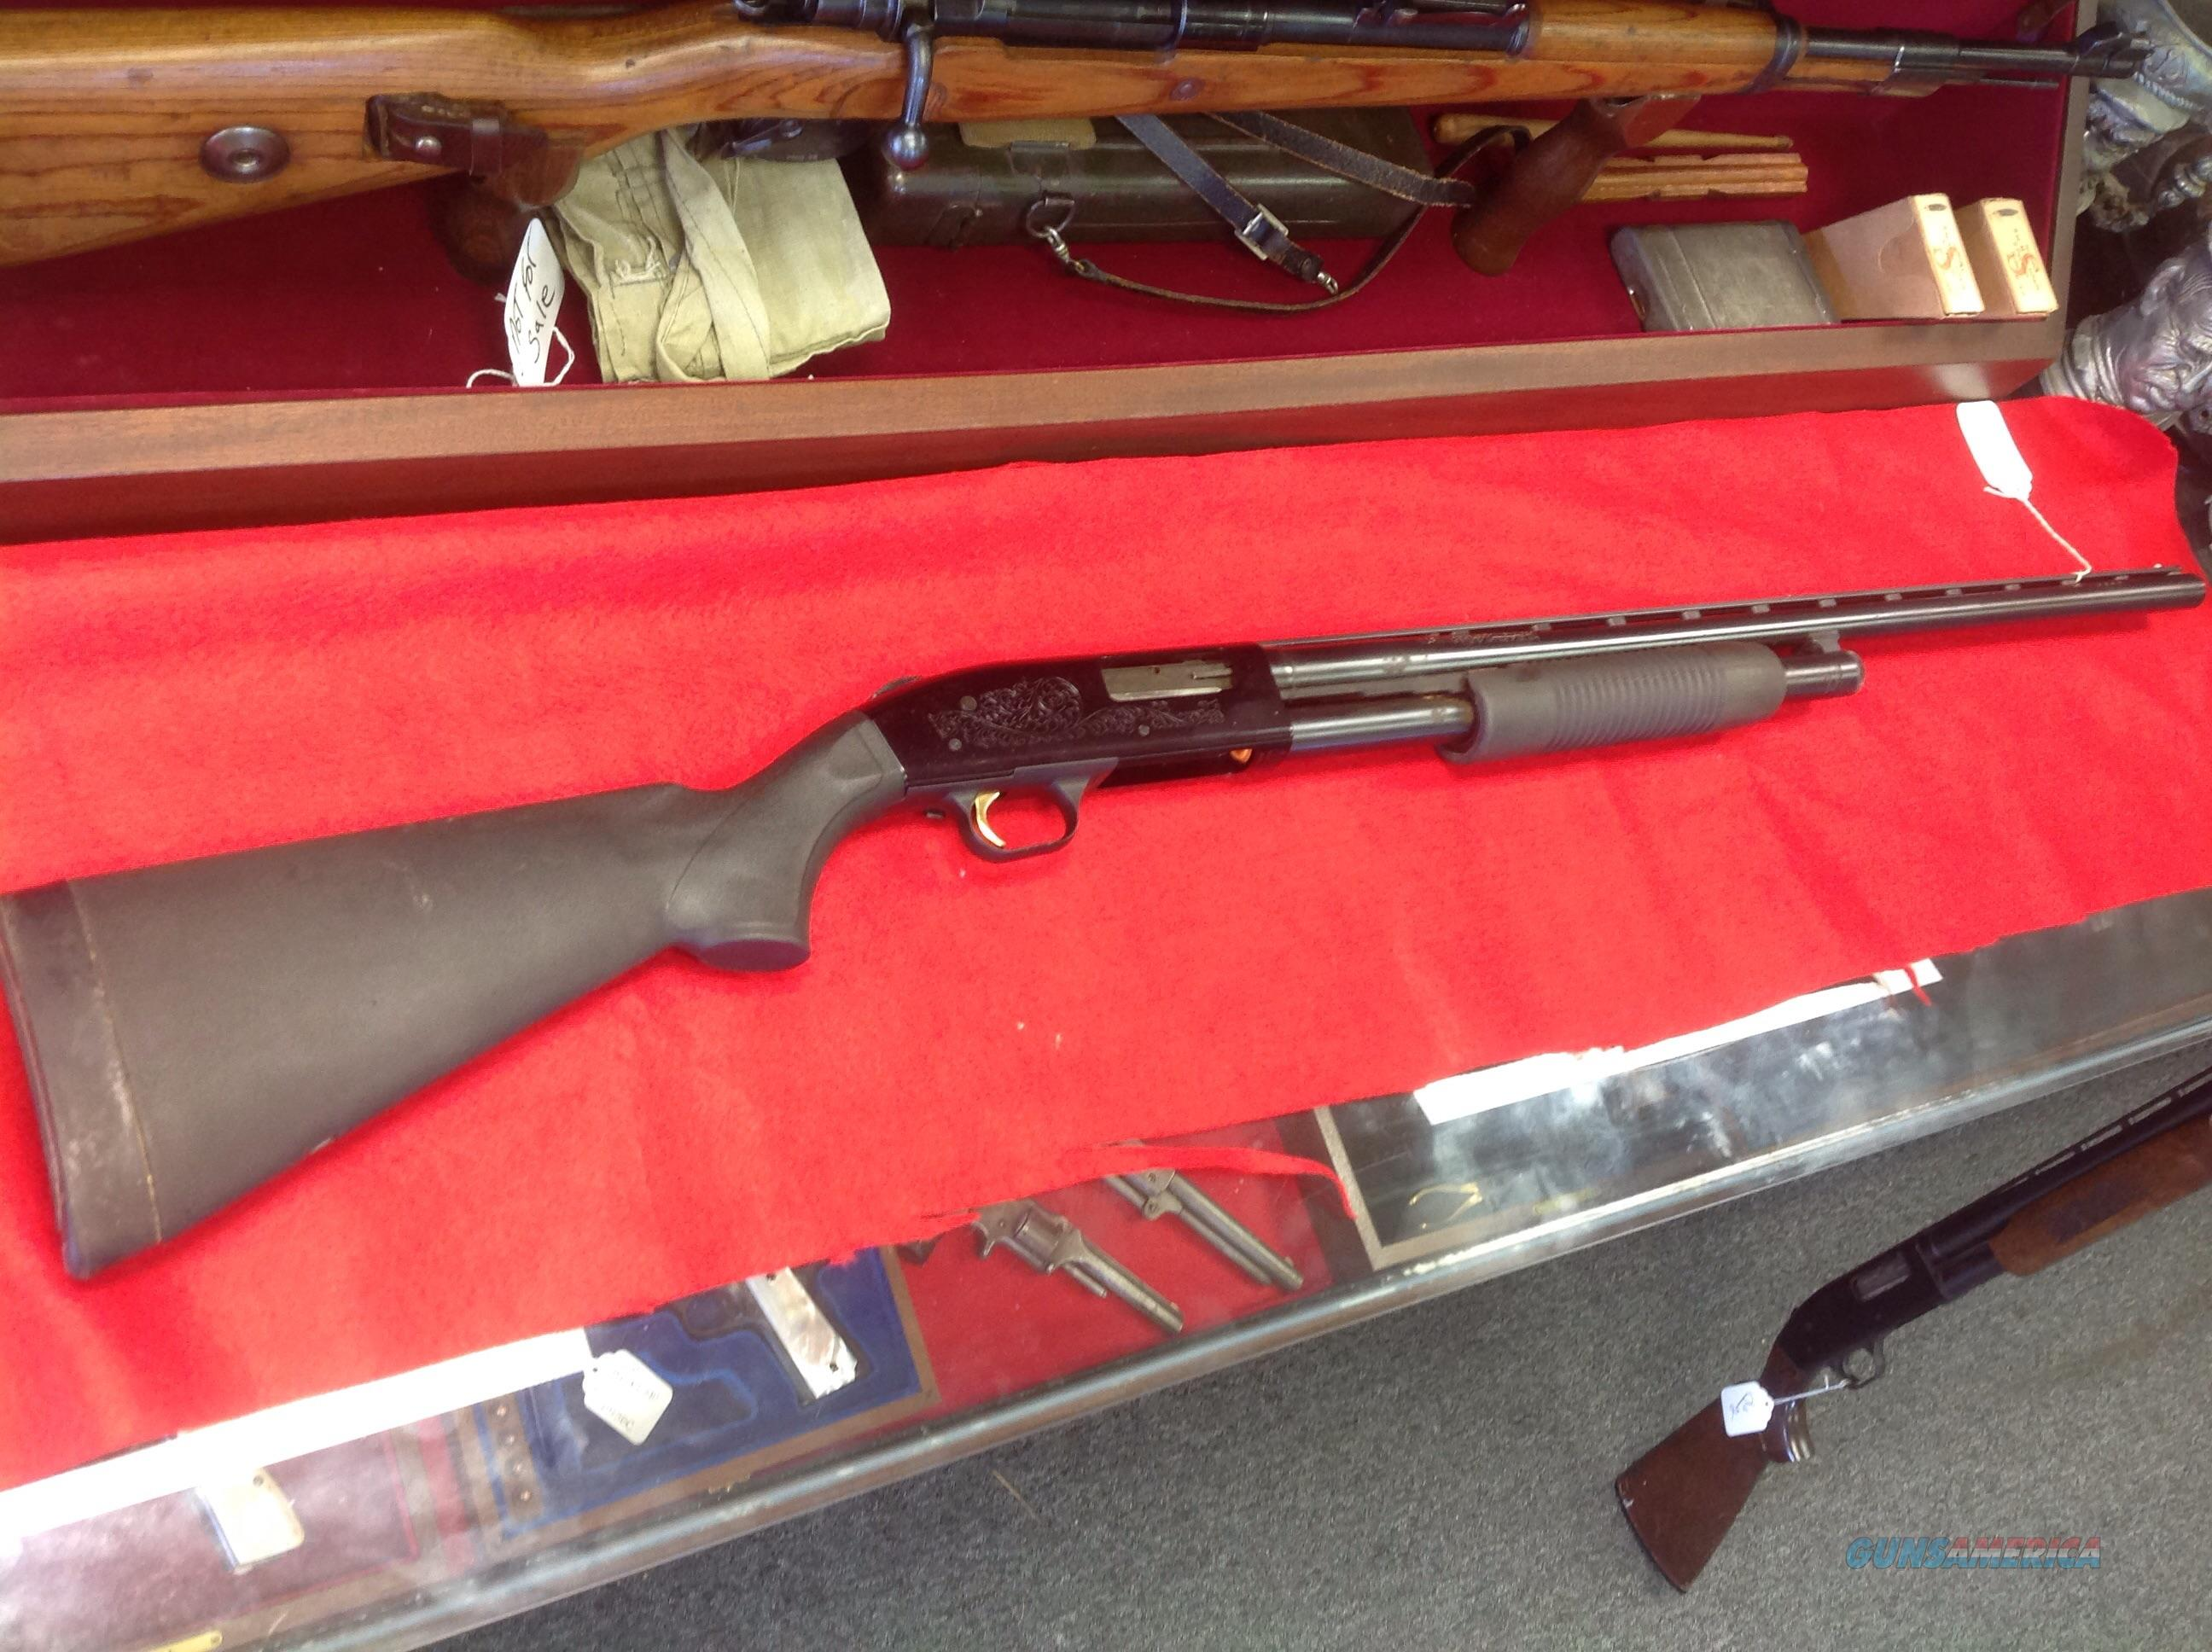 Mossberg 500 12ga 28in vr ported choke tubes blk syn stock  Guns > Shotguns > Mossberg Shotguns > Pump > Sporting